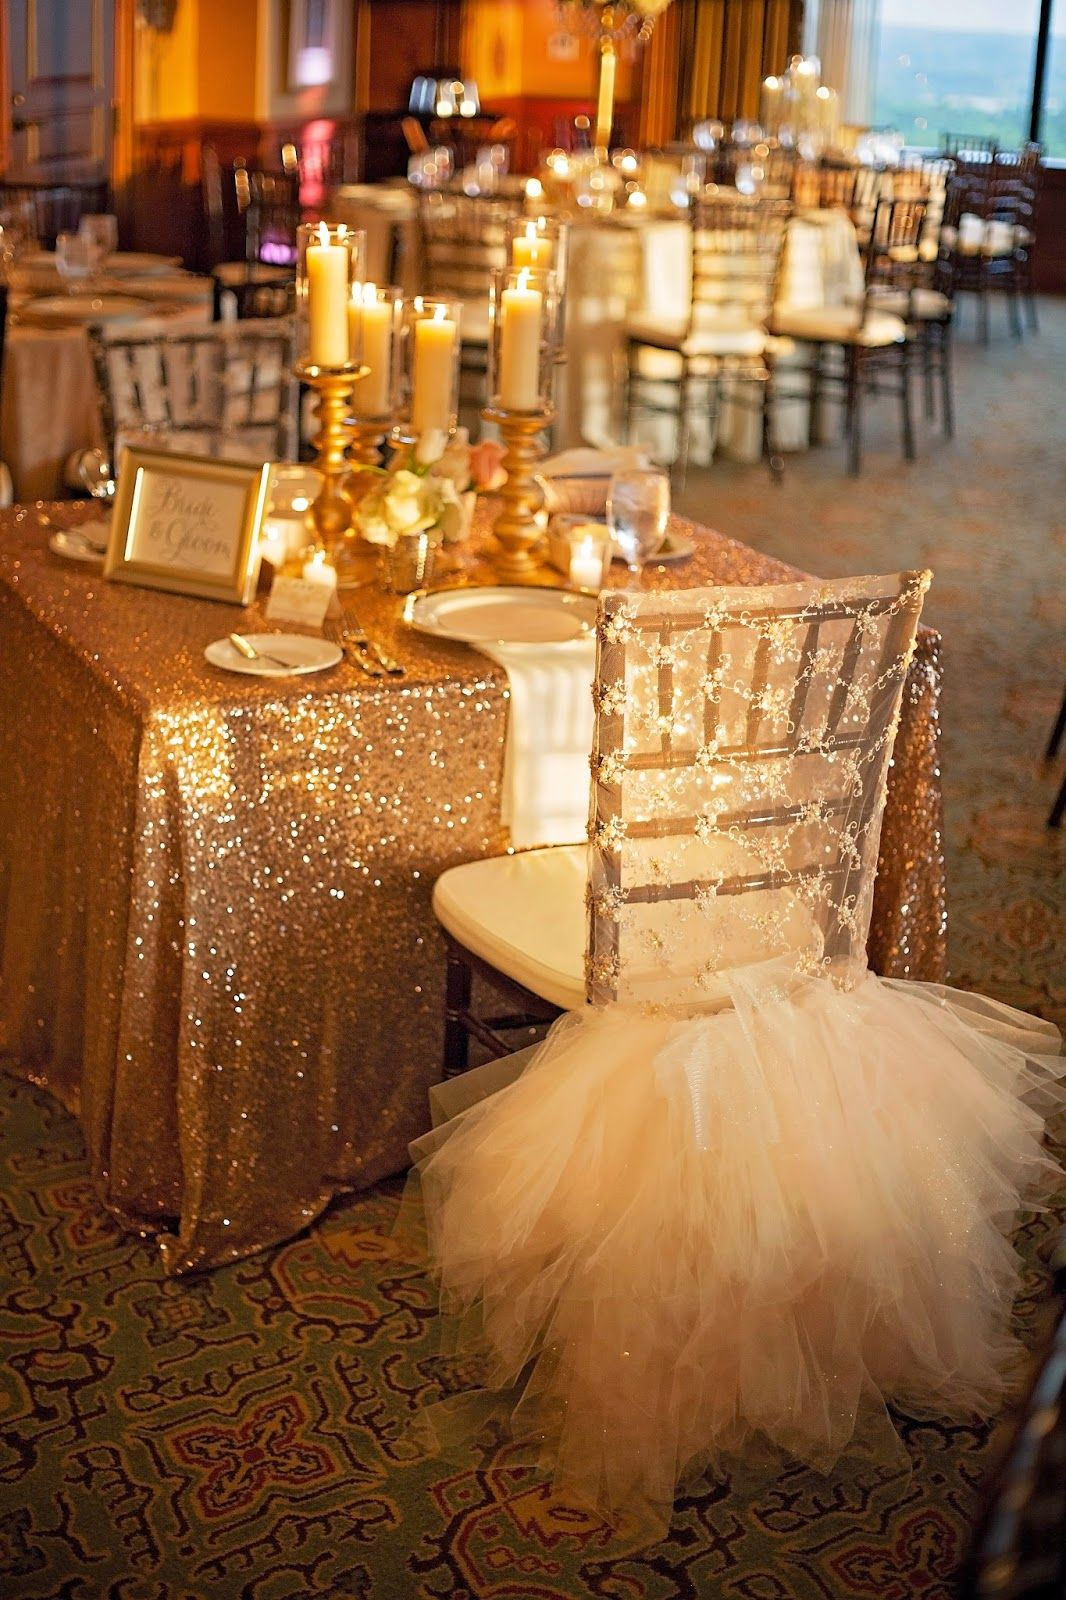 Cheap Chair Covers And Linens Academy Folding Chairs Lace Tulle Cover, Sequin Tablecloth, Sweetheart Table. All That Glitters Is Gold! Cute ...